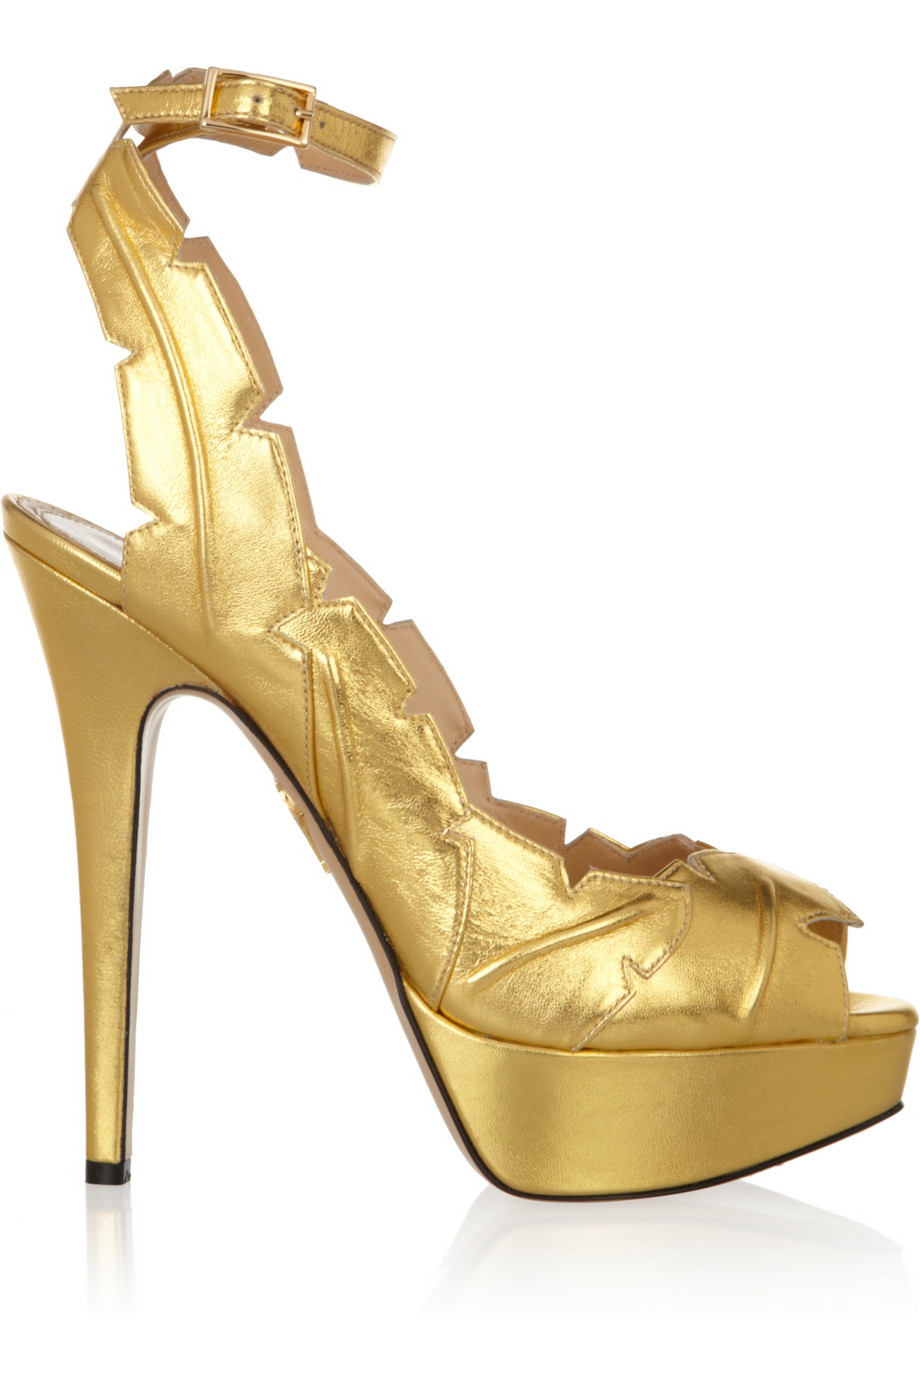 footaction Charlotte Olympia Metallic Leaf Sandals buy cheap footaction outlet comfortable TRzZyl